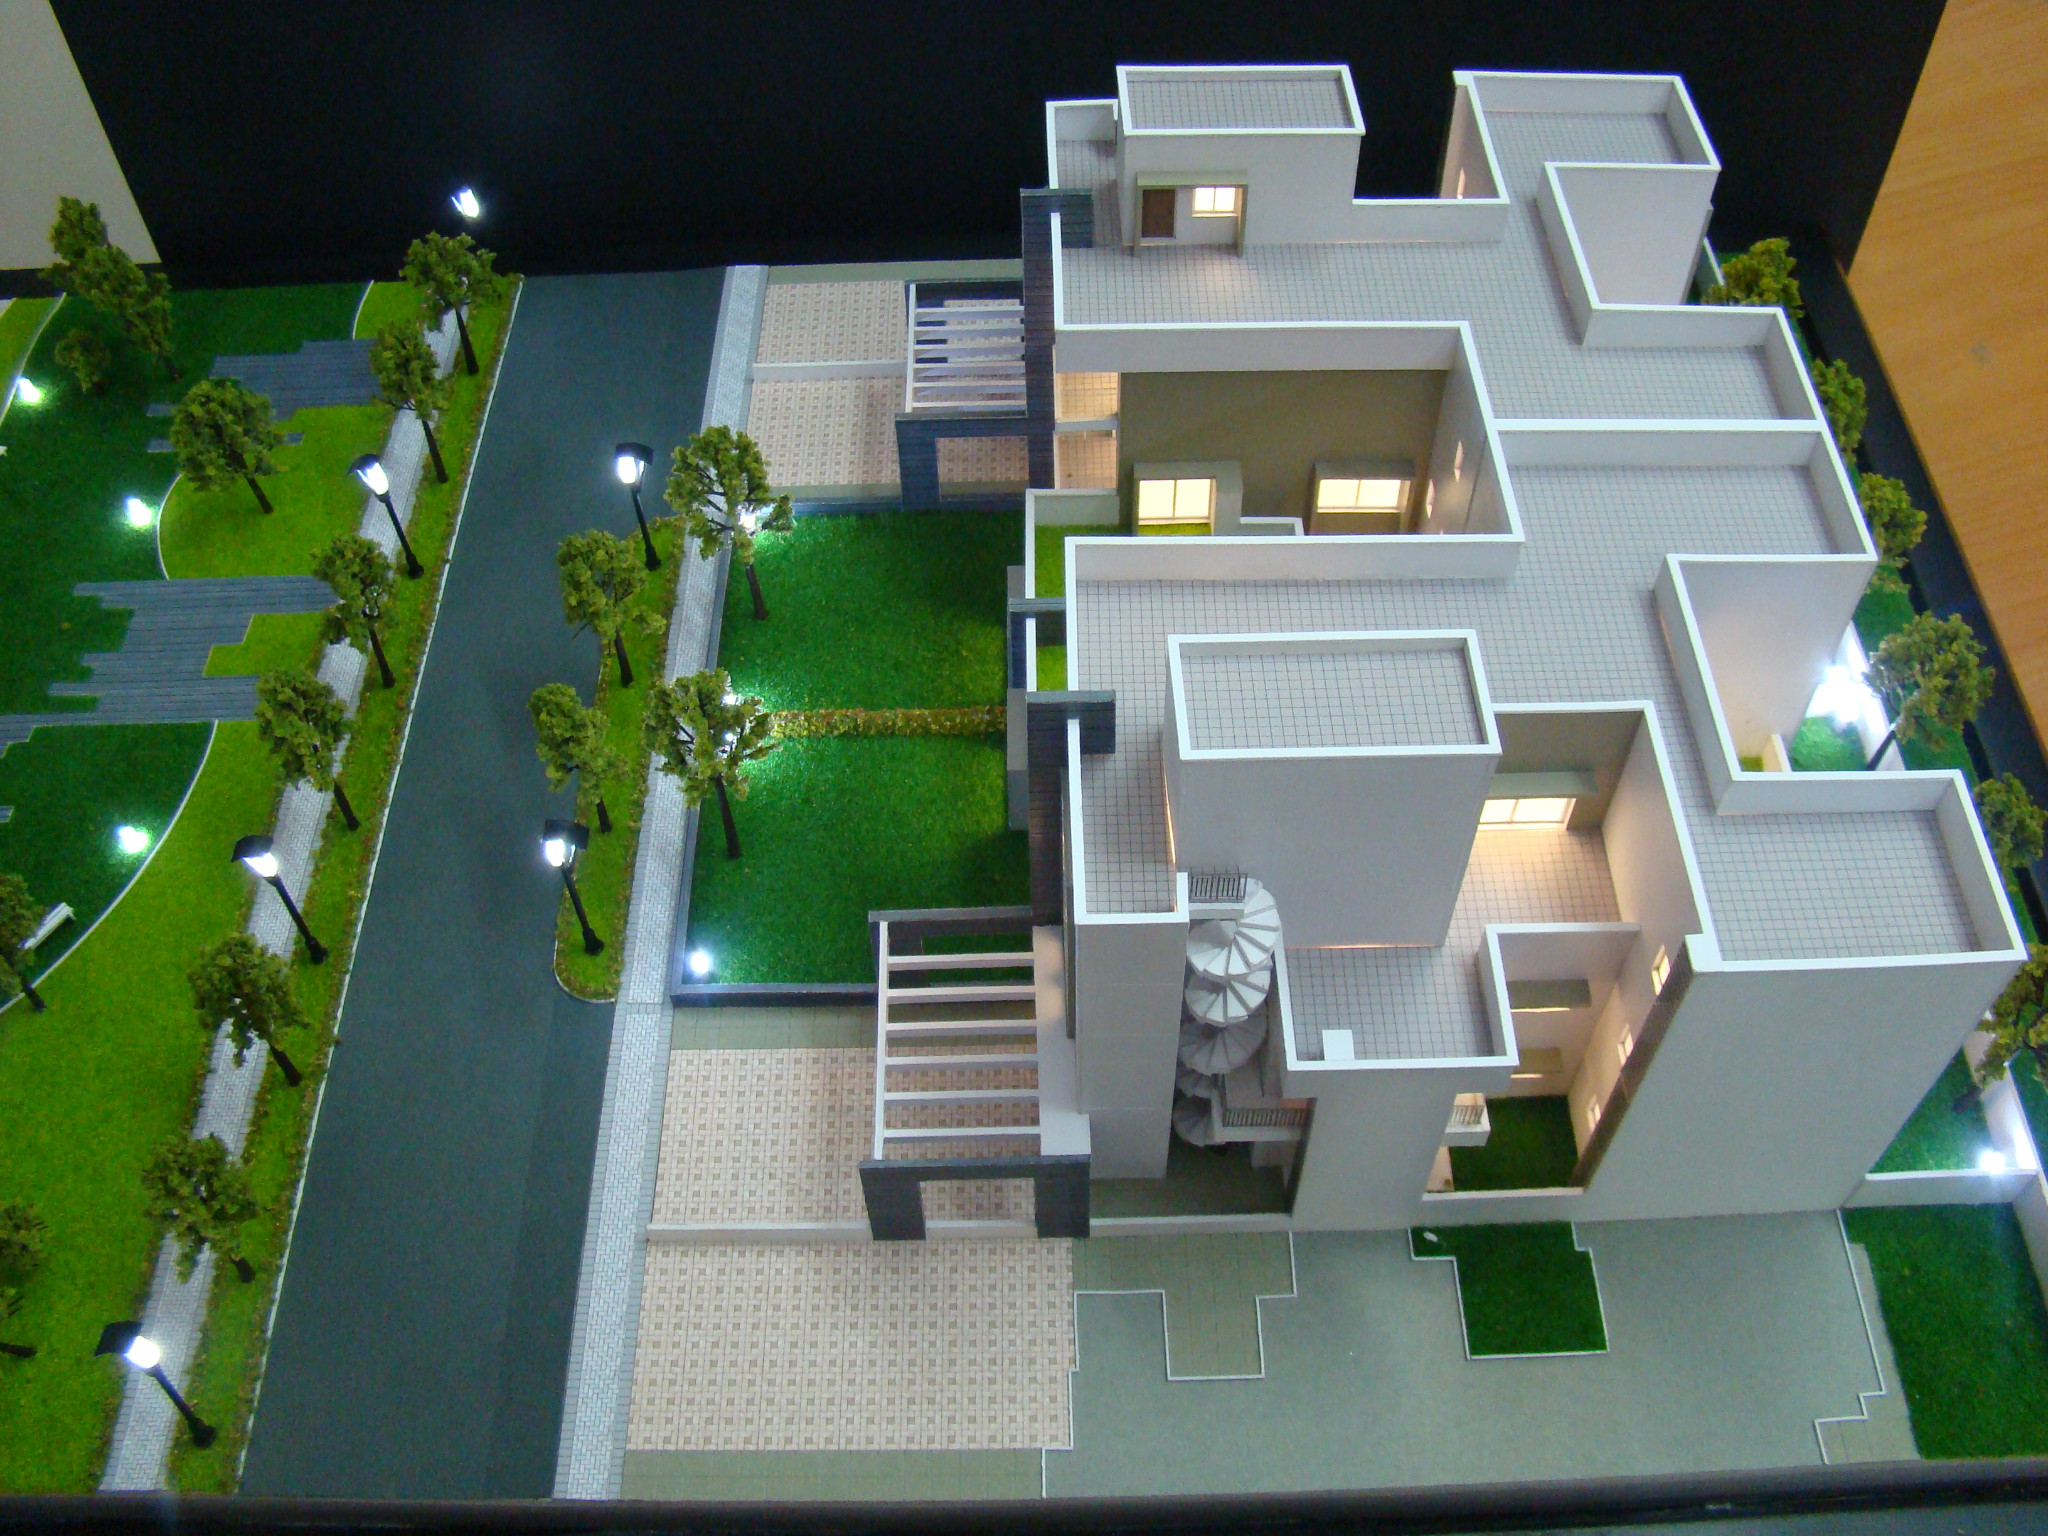 Architectural Model Making Materials